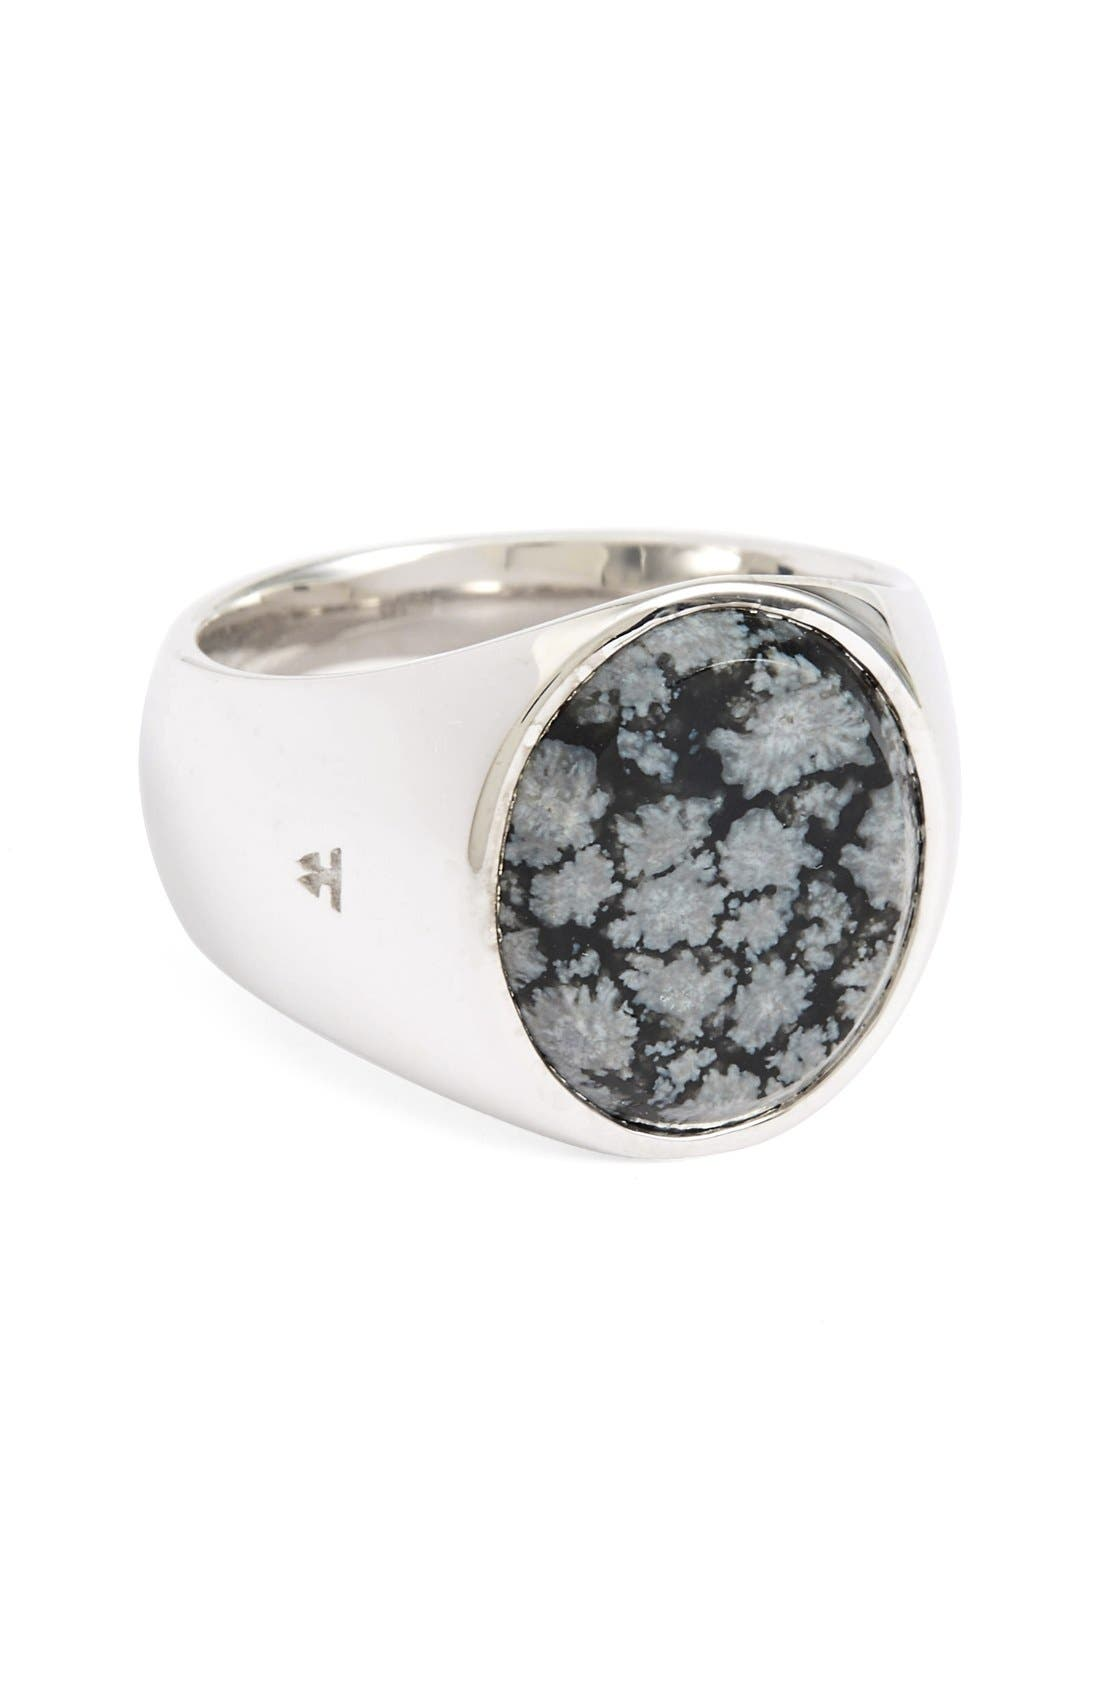 Snowflake Obsidian Oval Signet Ring,                         Main,                         color, Silver